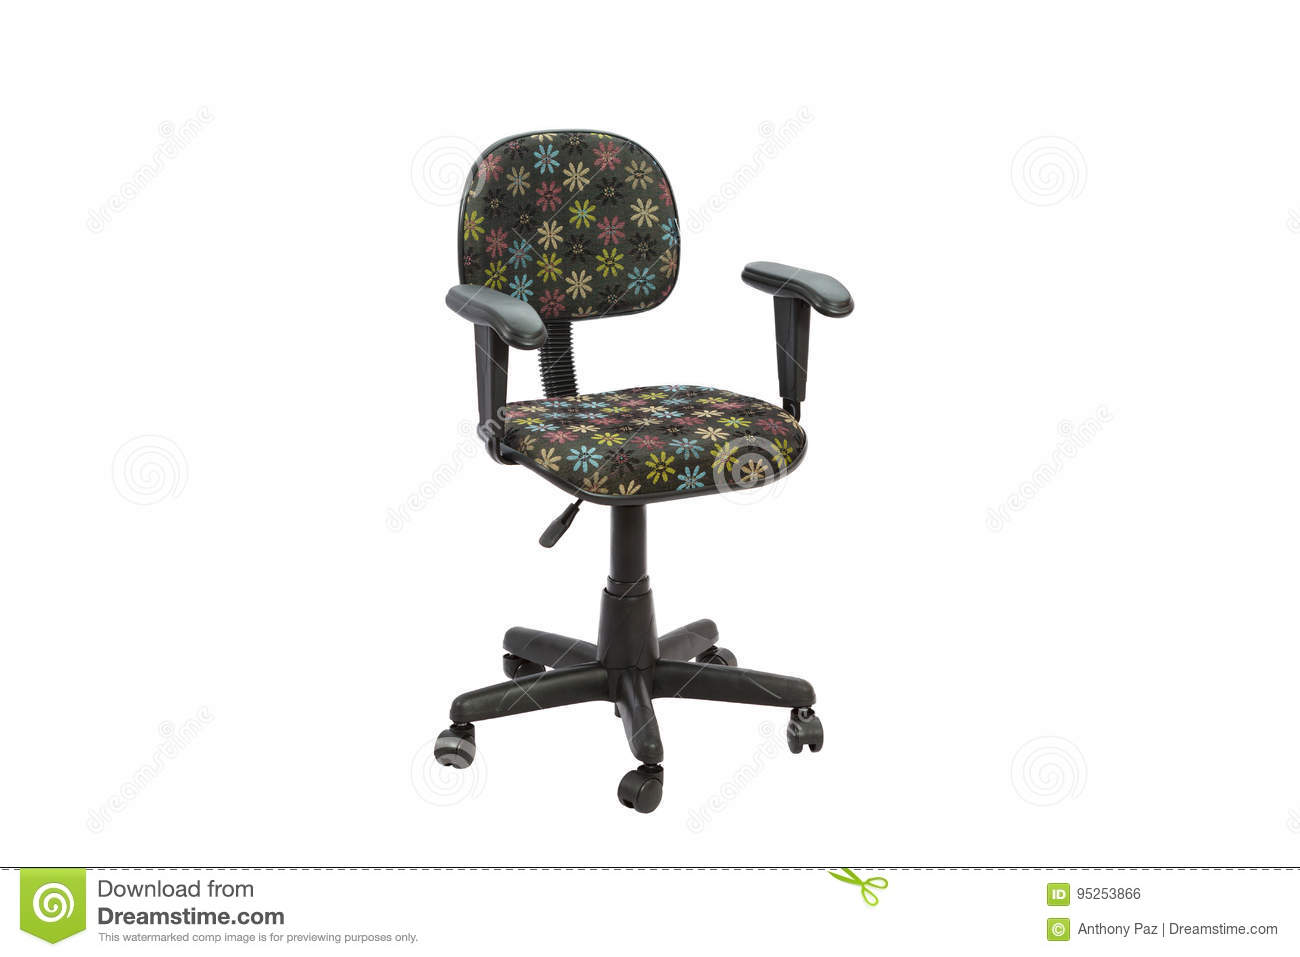 Remarkable Black Floral Office A Chair Stock Photo Image Of Equipment Inzonedesignstudio Interior Chair Design Inzonedesignstudiocom